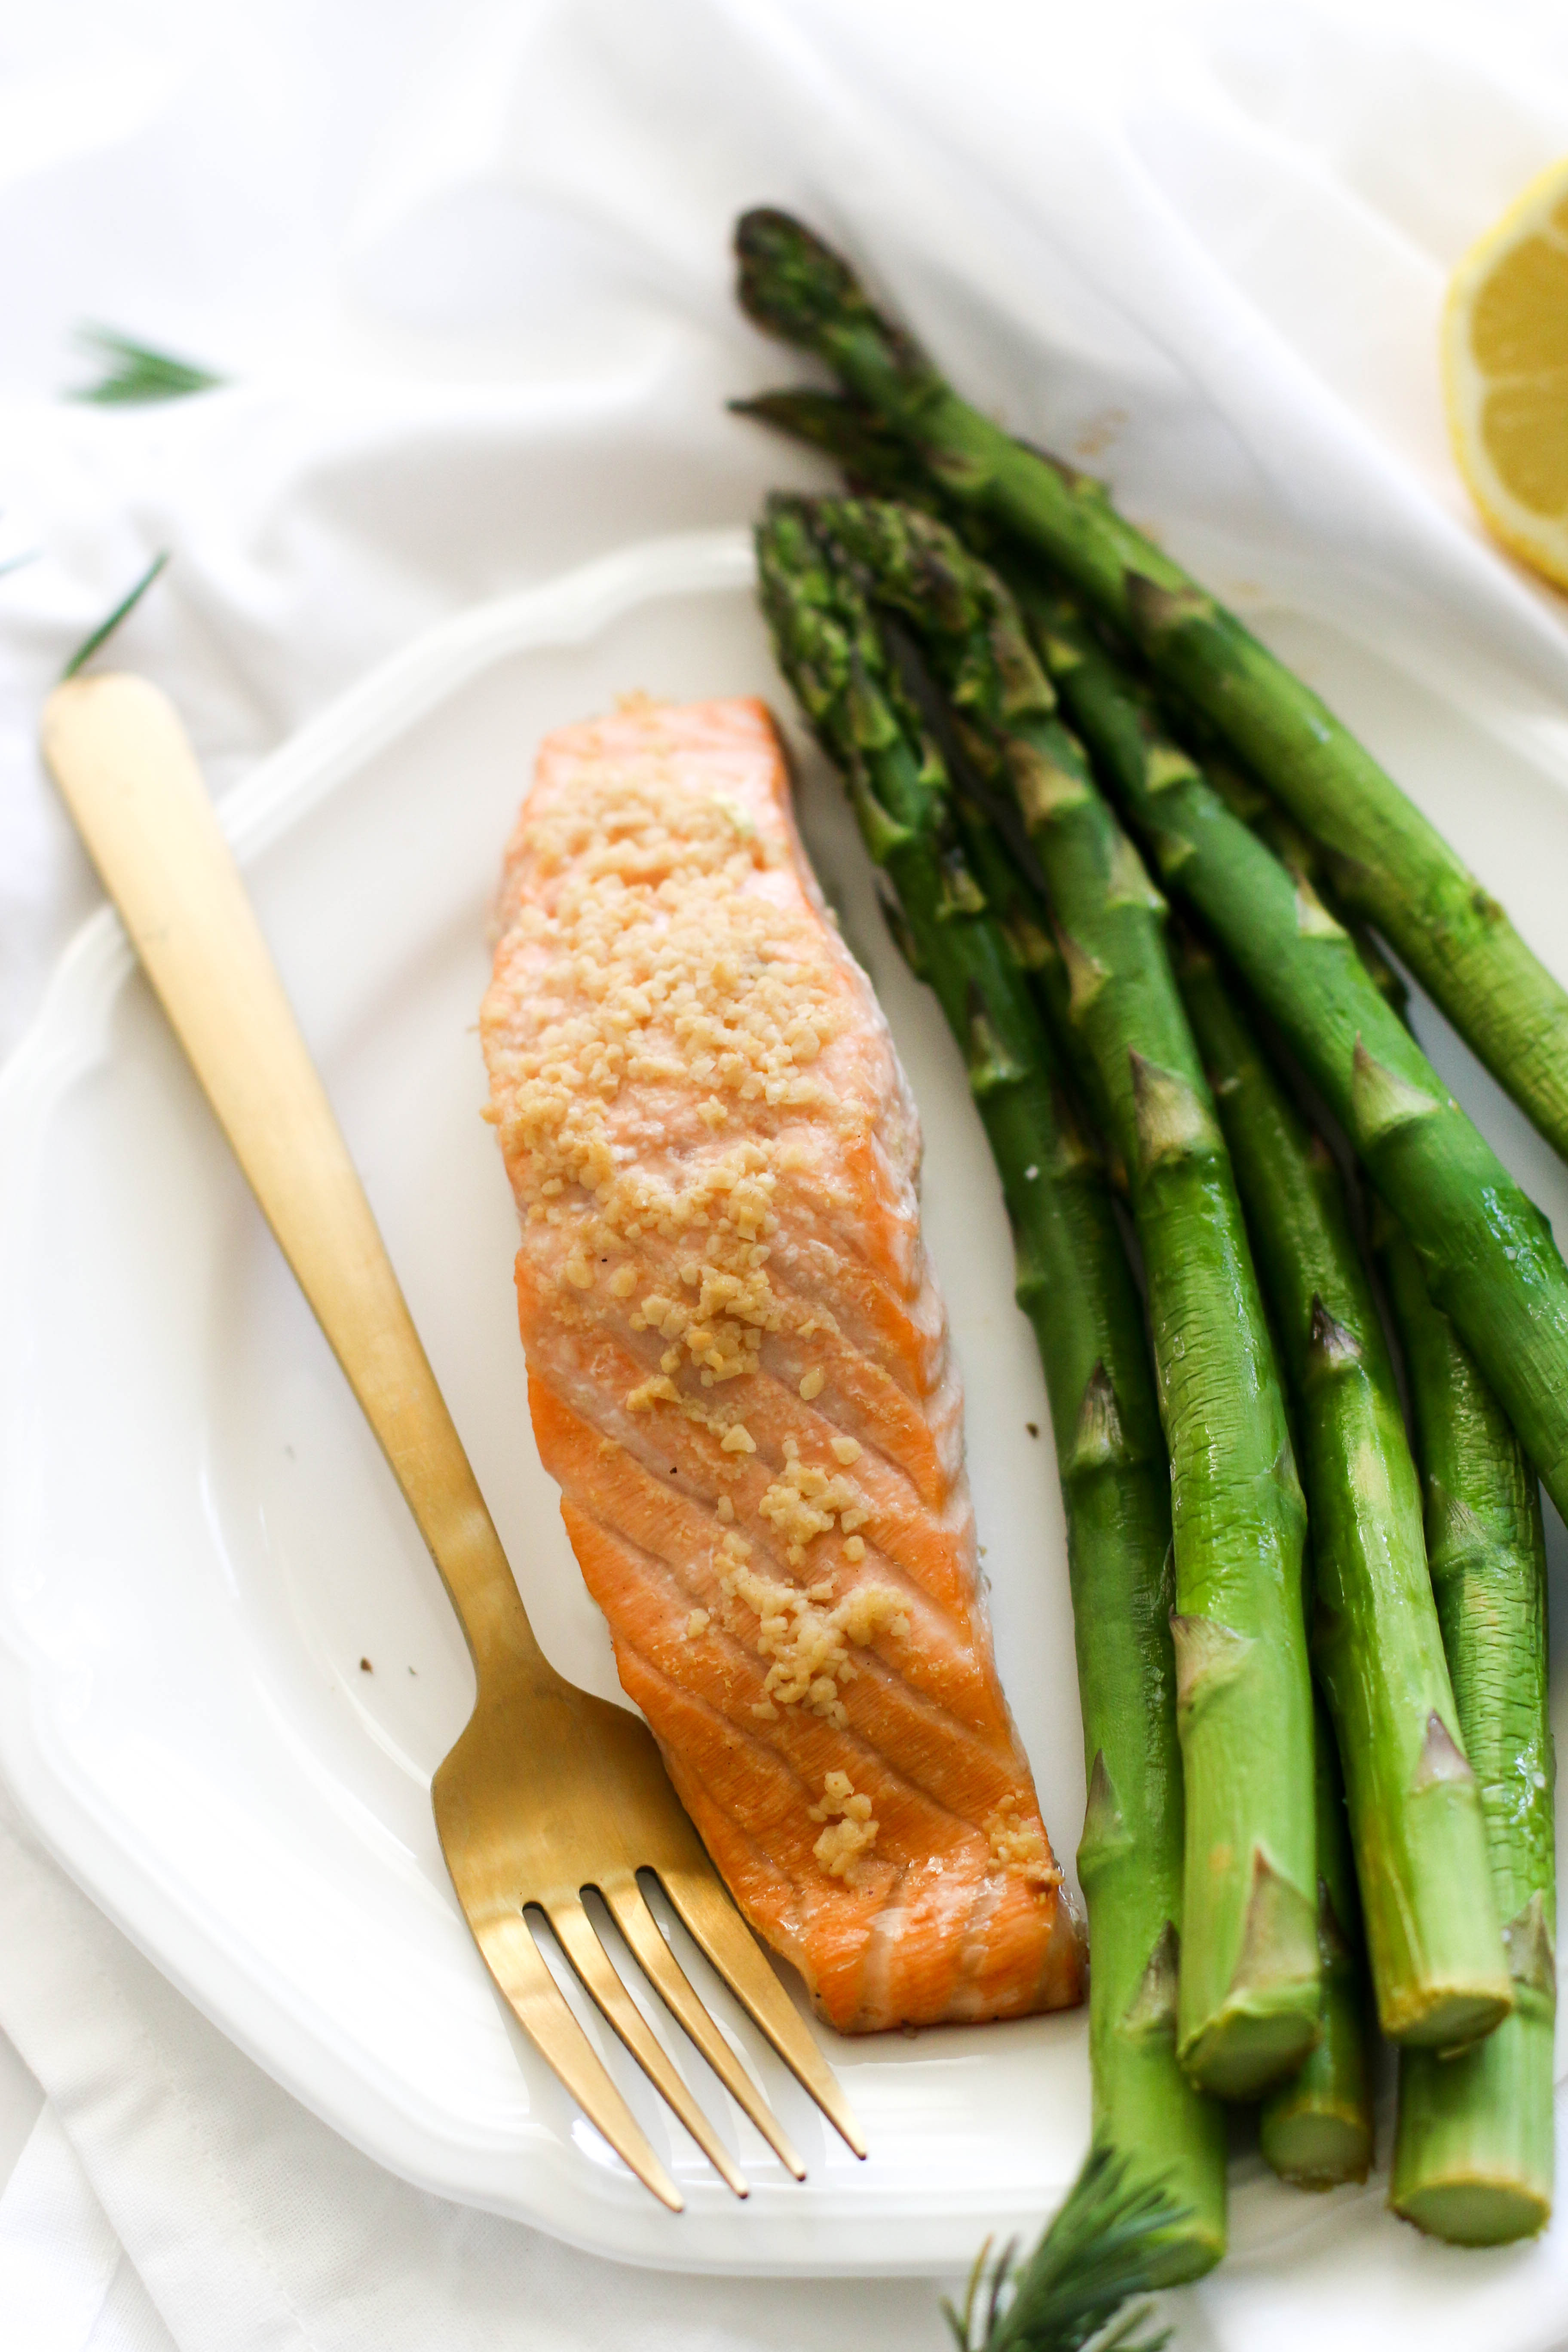 This one pan lemon garlic salmon & asparagus dish is paleo, gluten free, and a great 20 minute dinner. It's filled with healthy fats, fresh produce, and when served with a side of carbs, makes for a balanced, healthy dinner!